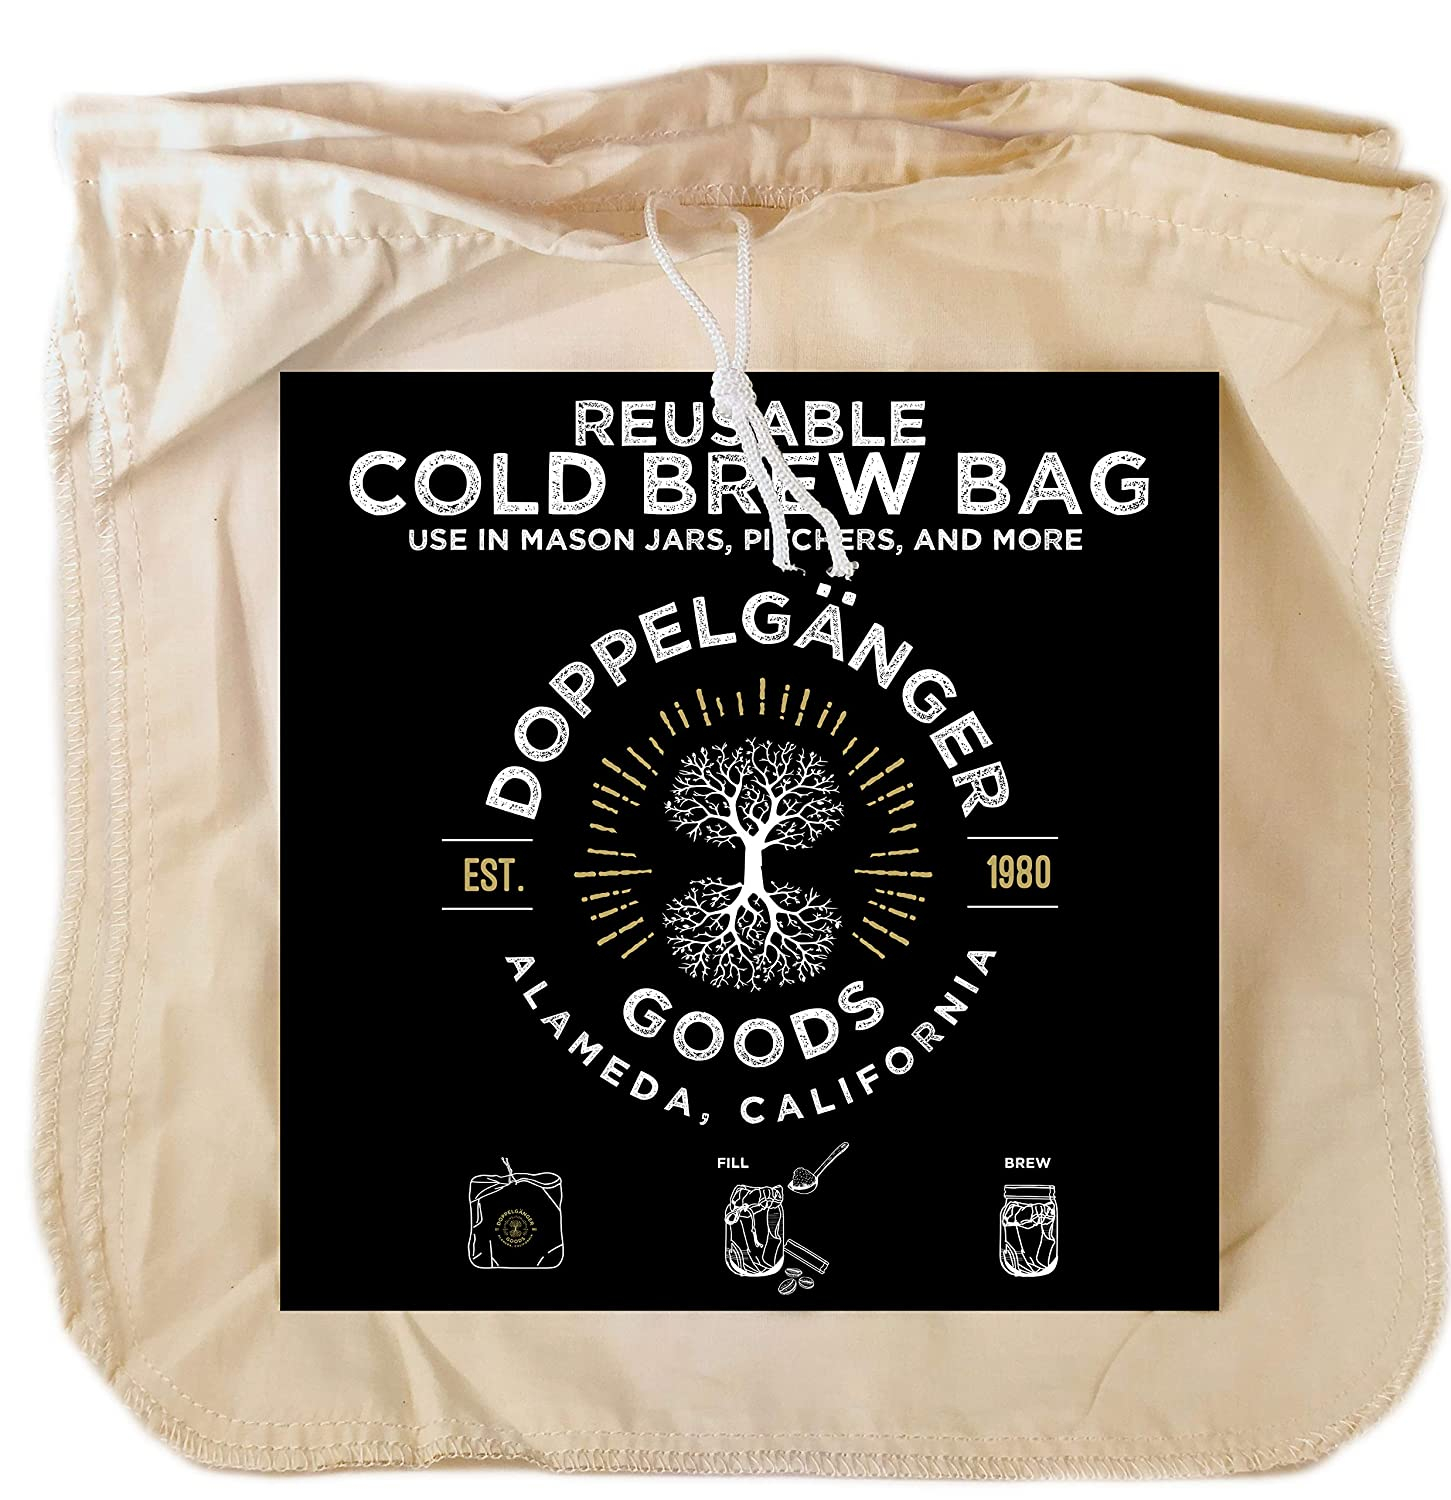 (2 Pack) Organic Cotton Cold Brew Coffee Bag - Designed in California - Extra Large 12 inch x 12 inch Reusable Filter Bags with EasyOpen Drawstring to Make Cold Brew in Pitchers or Mason Jars